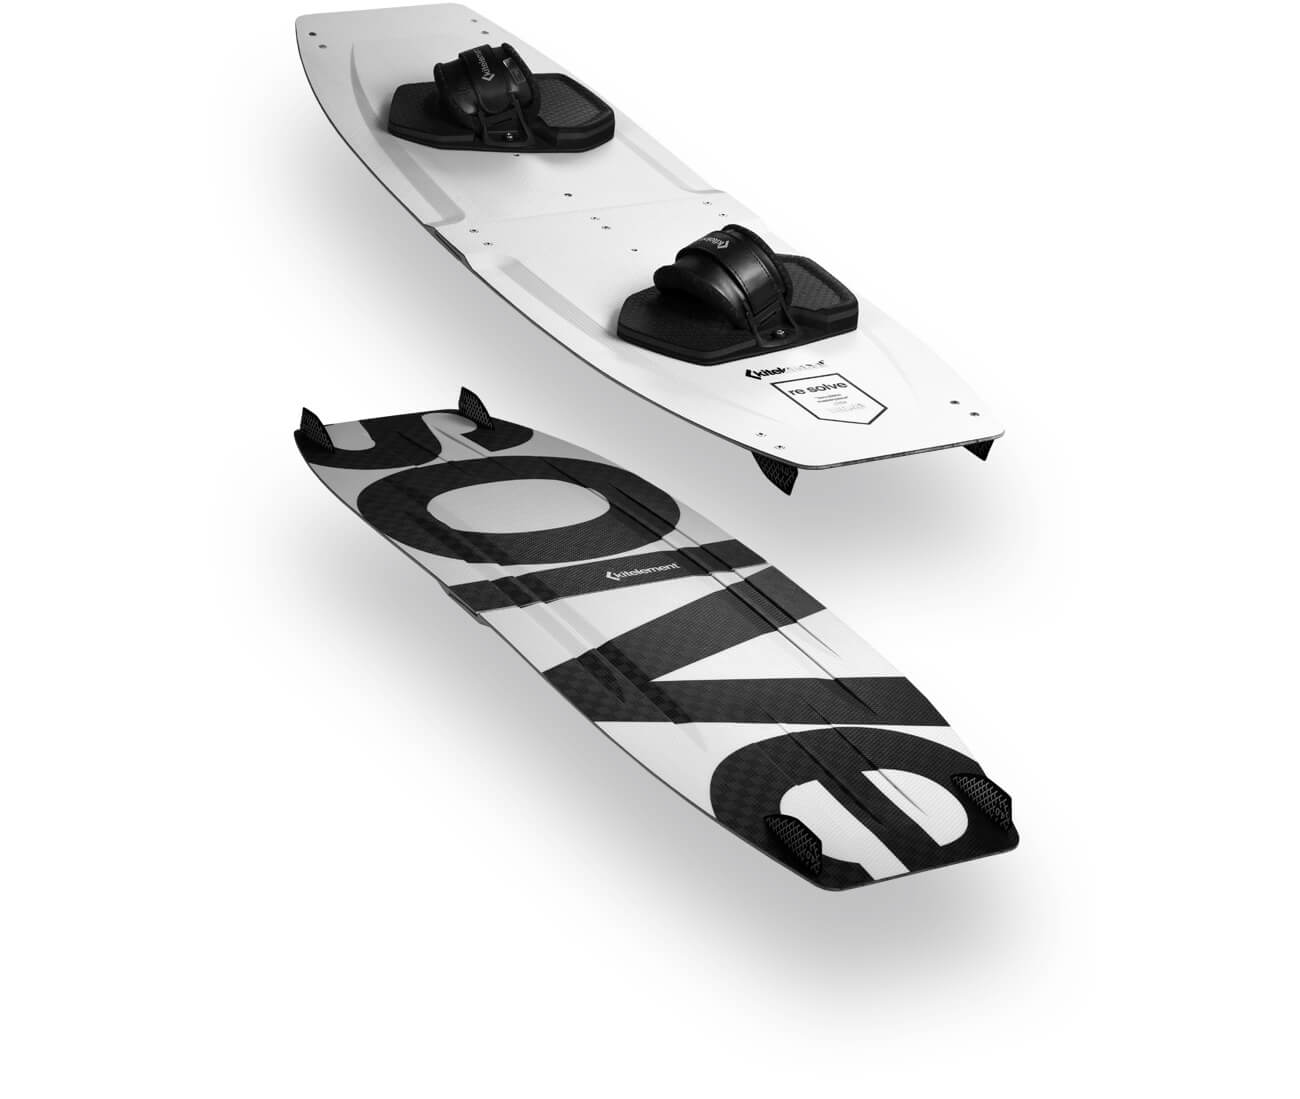 kitelement - split kiteboard - re solve white polyurethane side walls